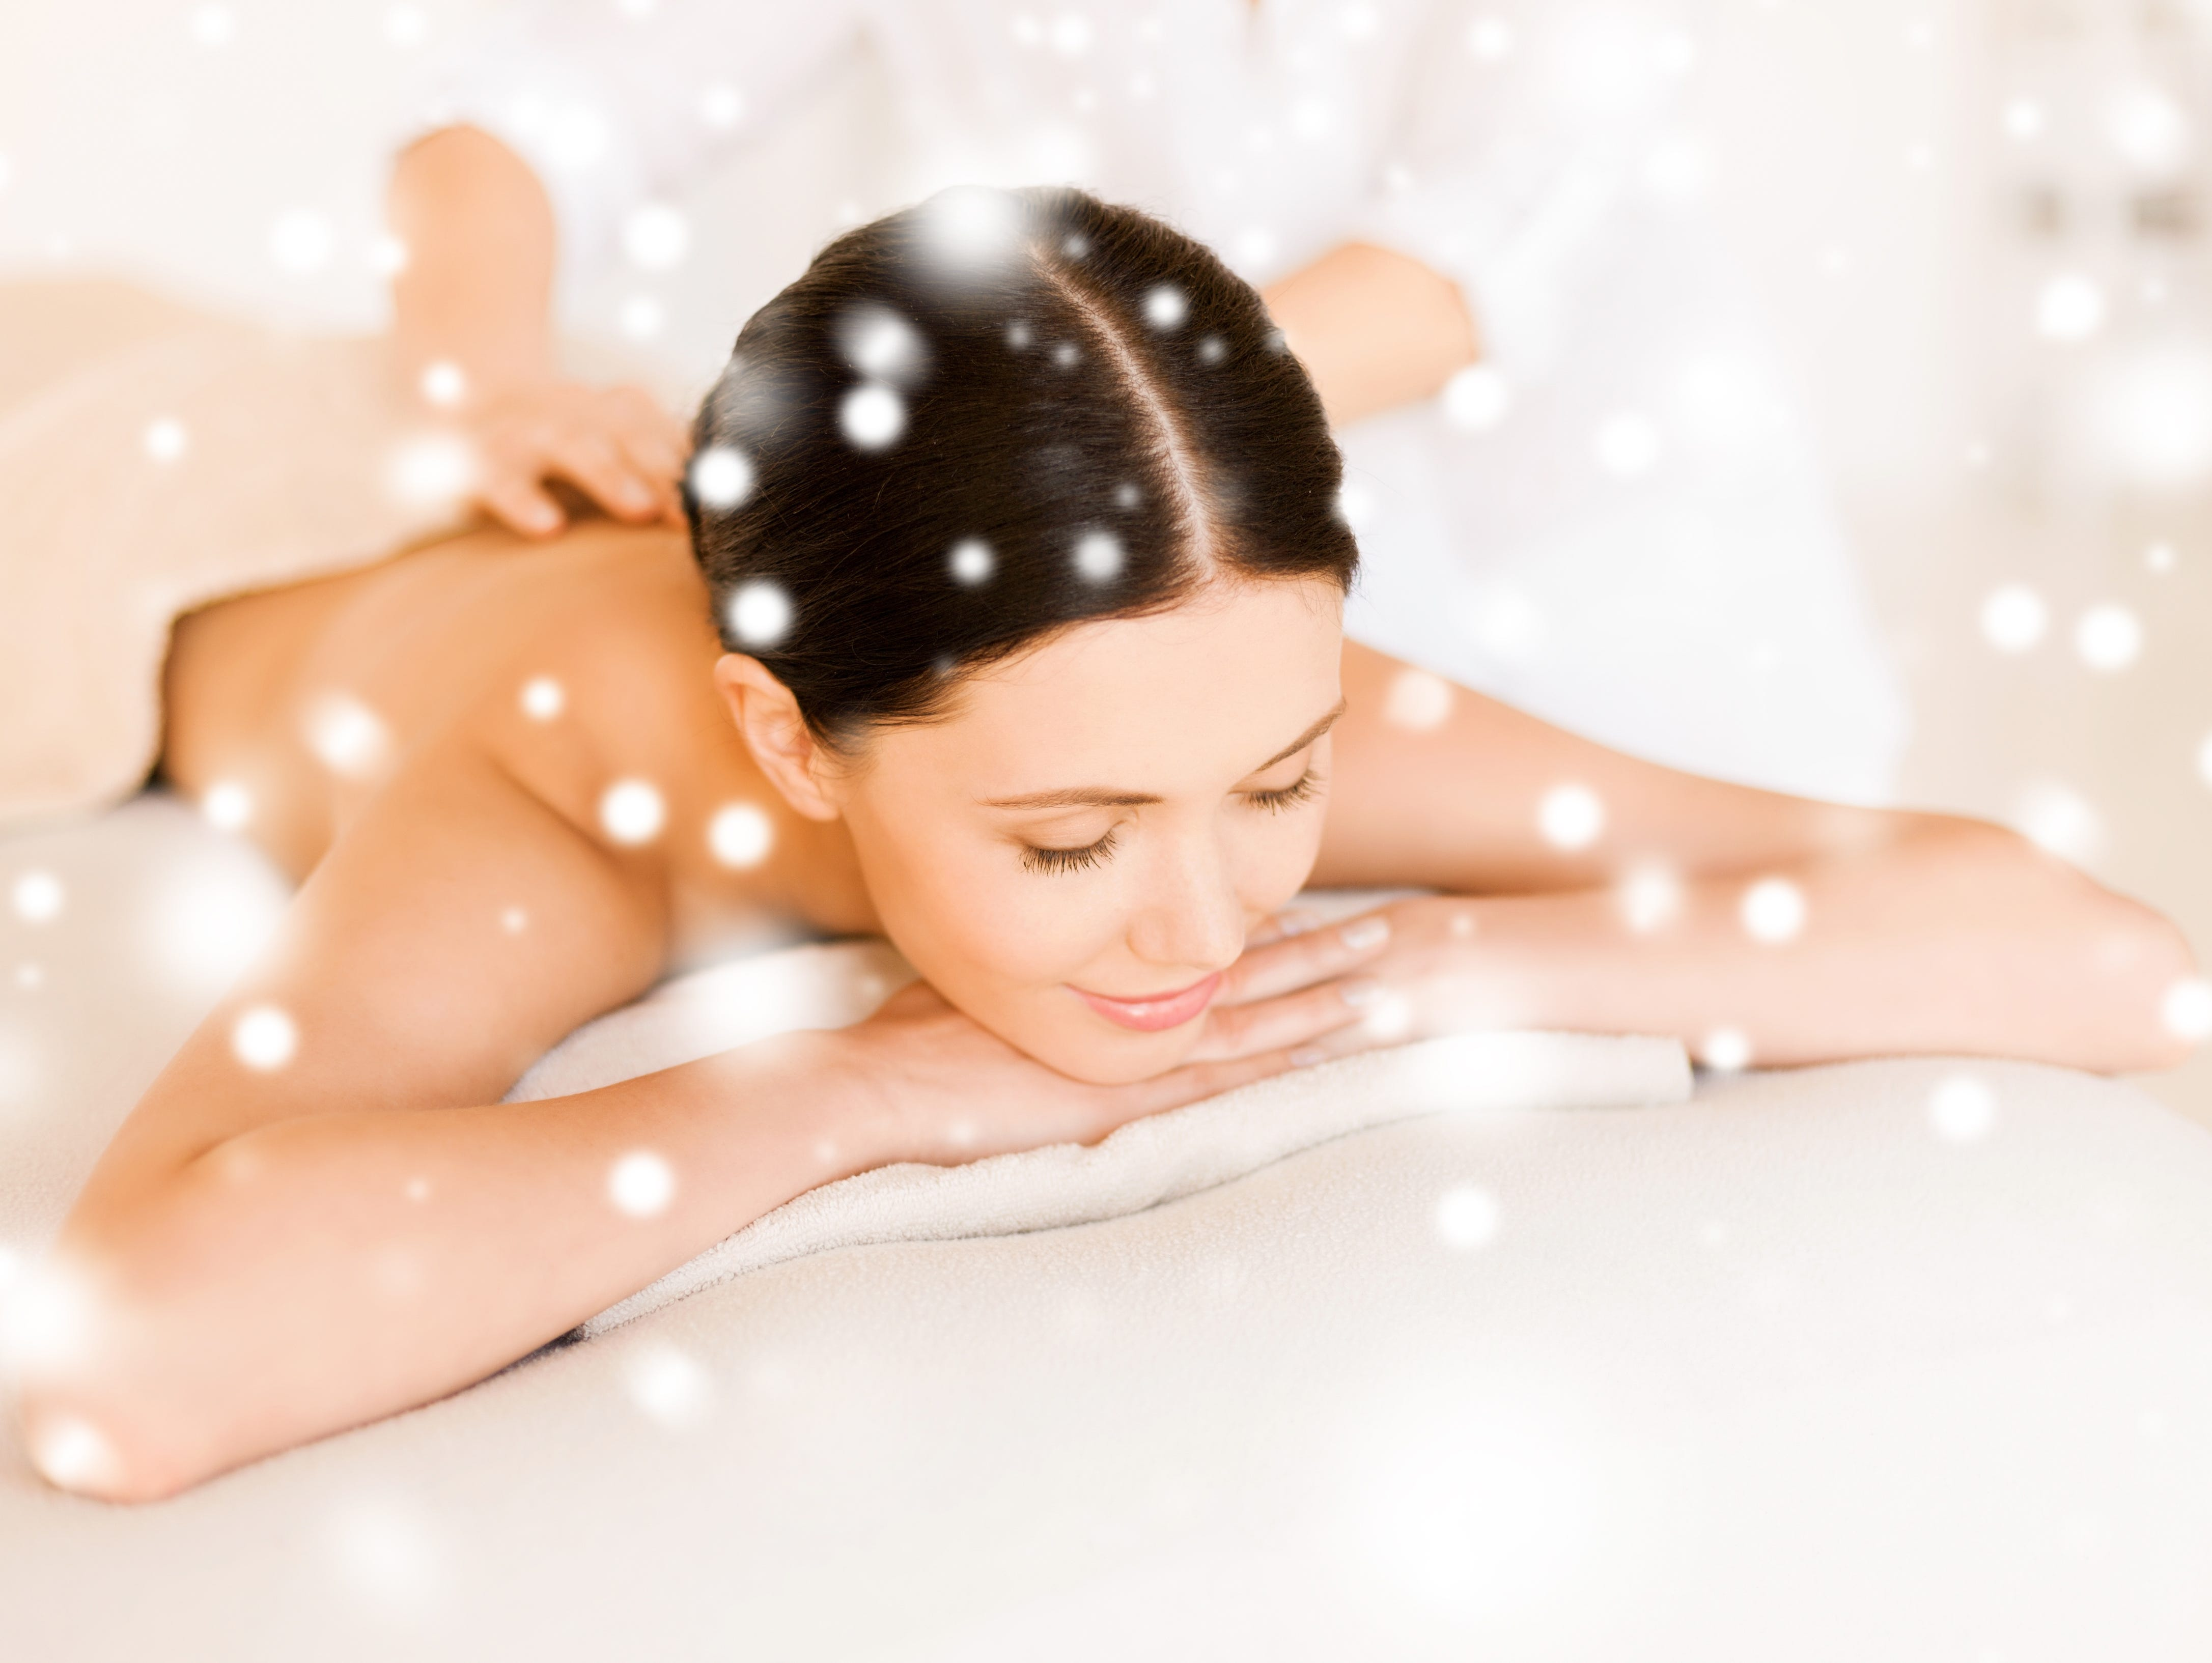 Buy 4 massages, get 2 free at A Well Kneaded Massage - save up to $450!